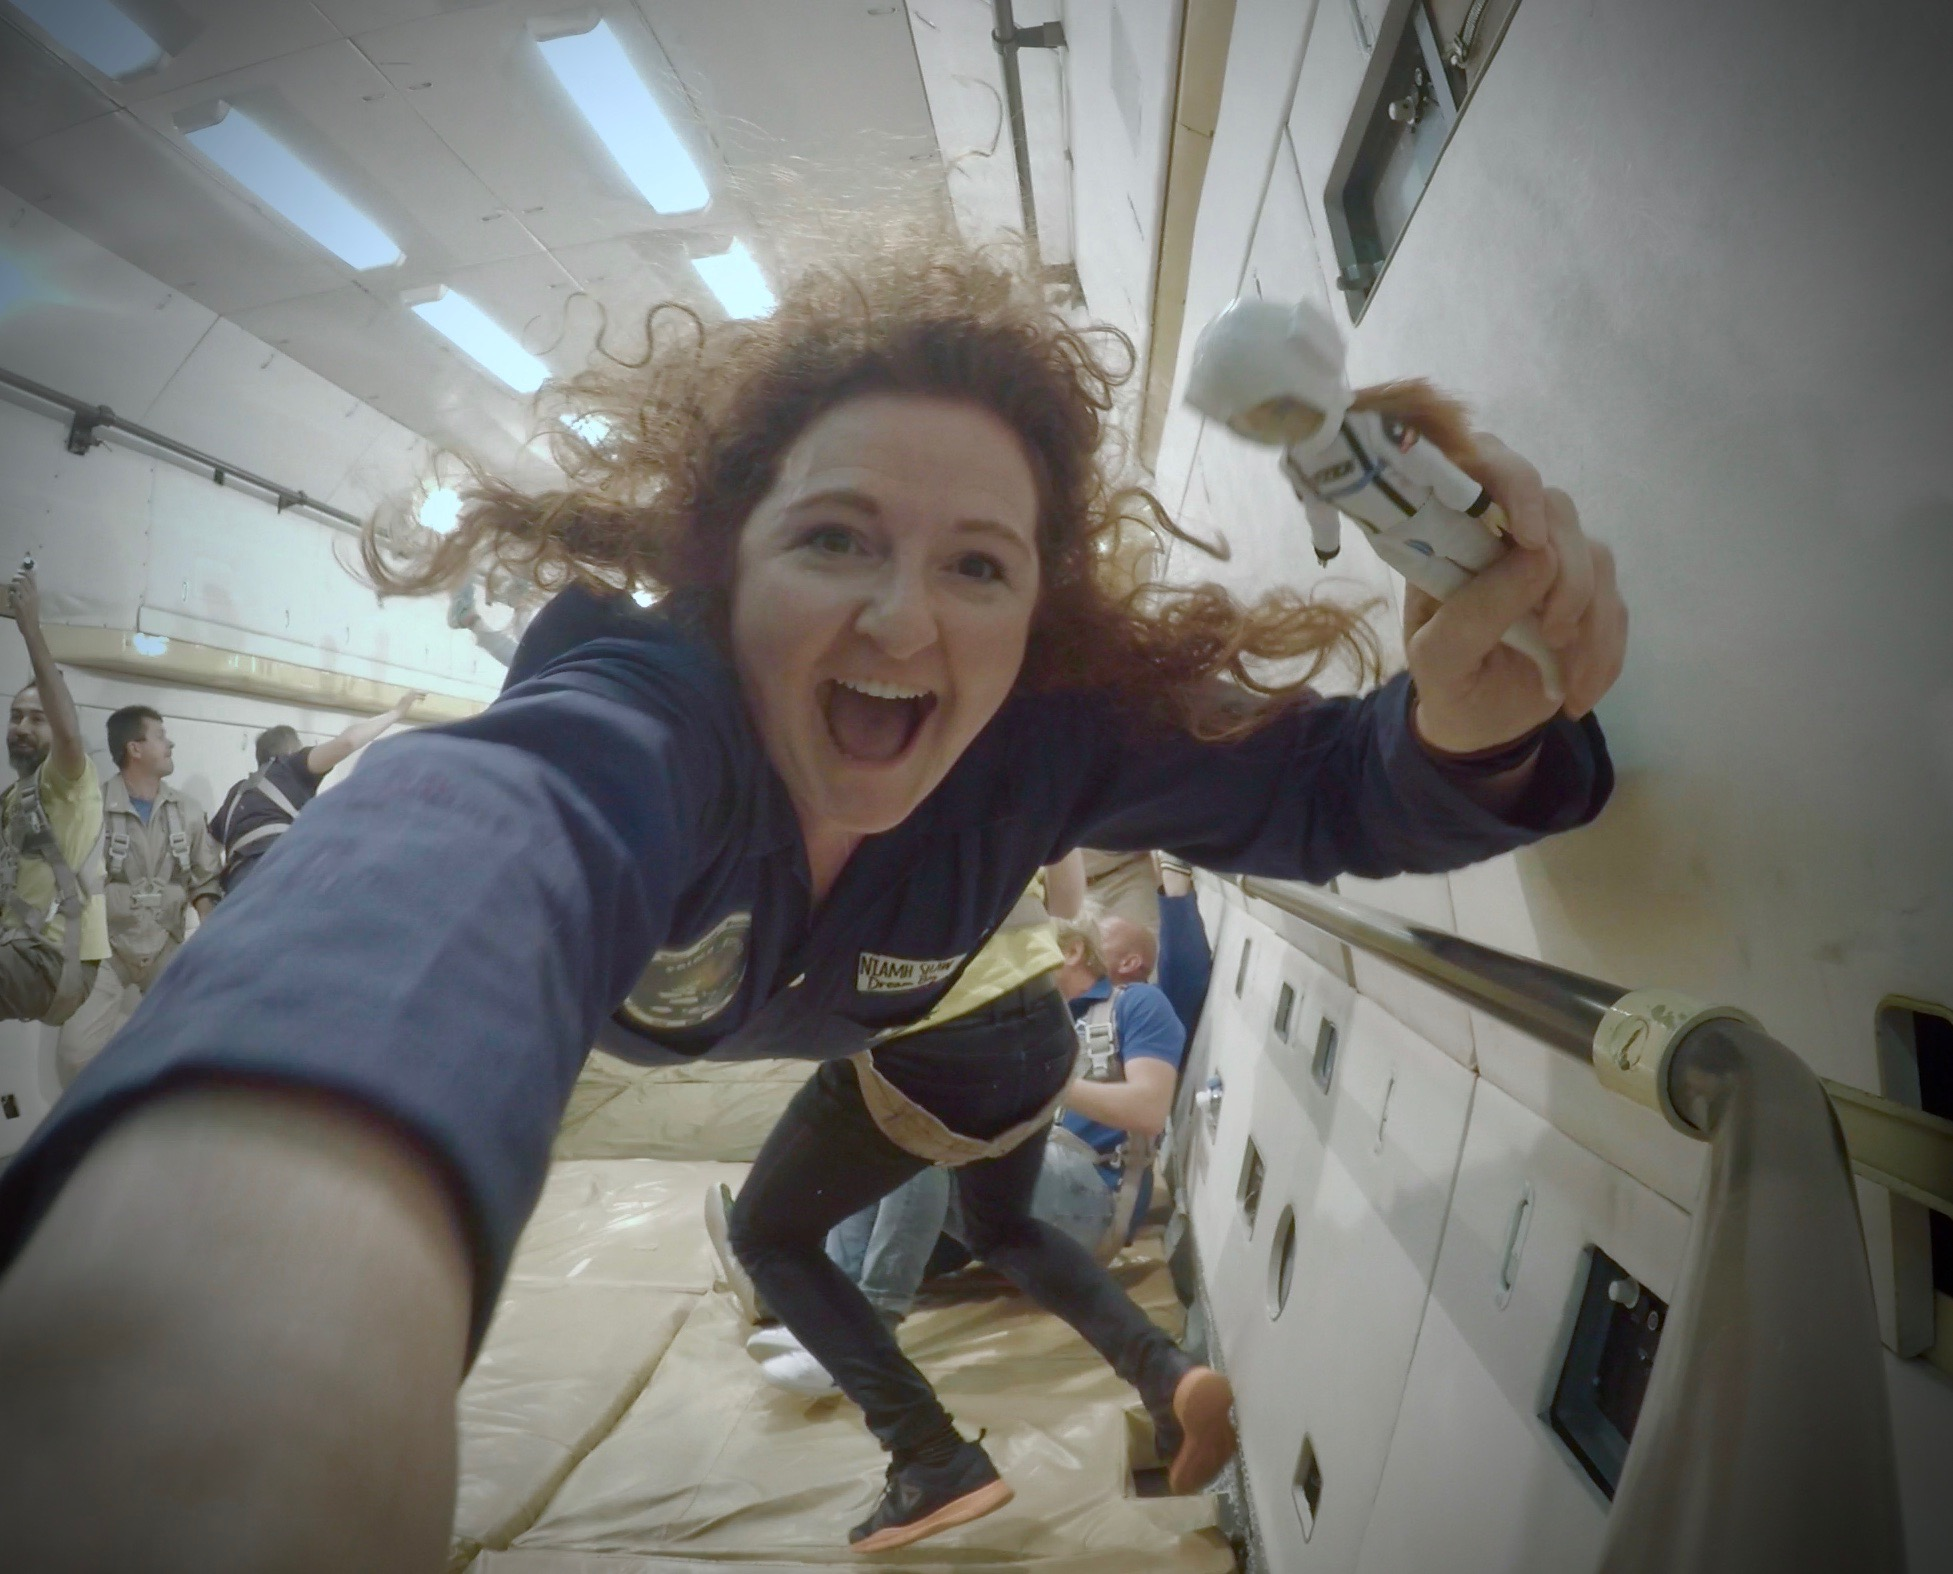 Niamh Shaw Wants To Go To Space: What It Takes To Make The Impossible, Possible